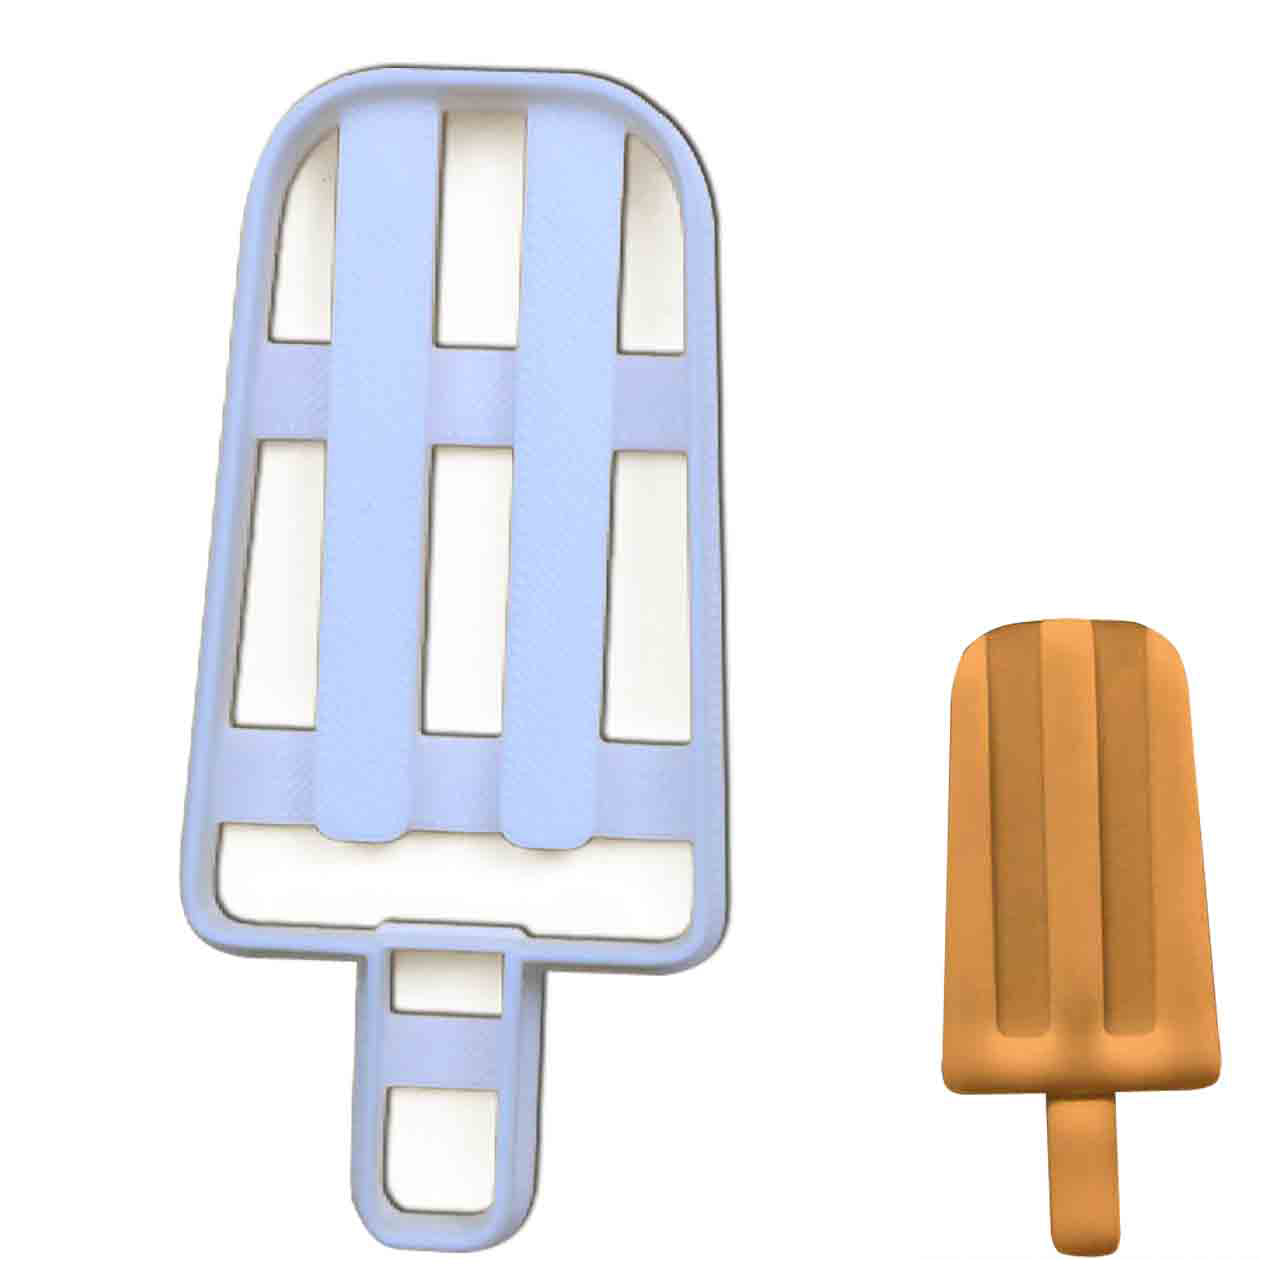 Ice Popsicle Cookie Cutter